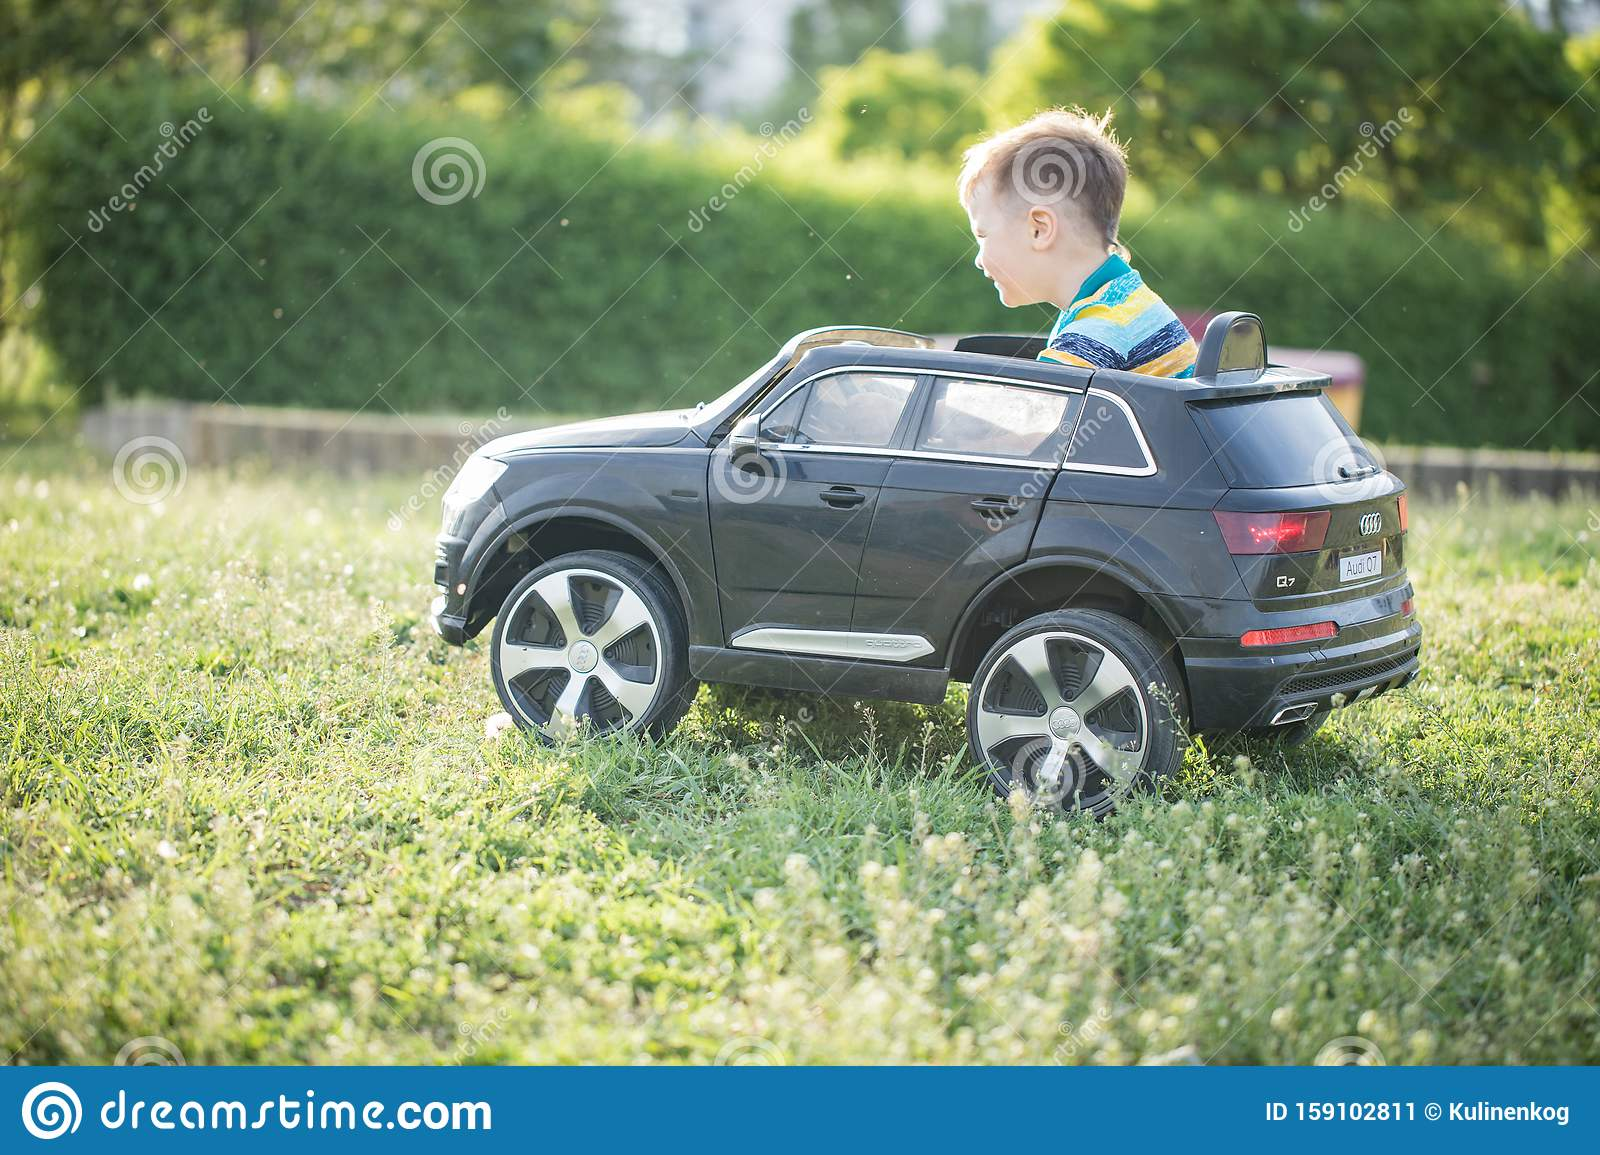 Cute Little Boy In Riding A Black Electric Car In The Park Stock Image Image Of Black Leisure 159102811